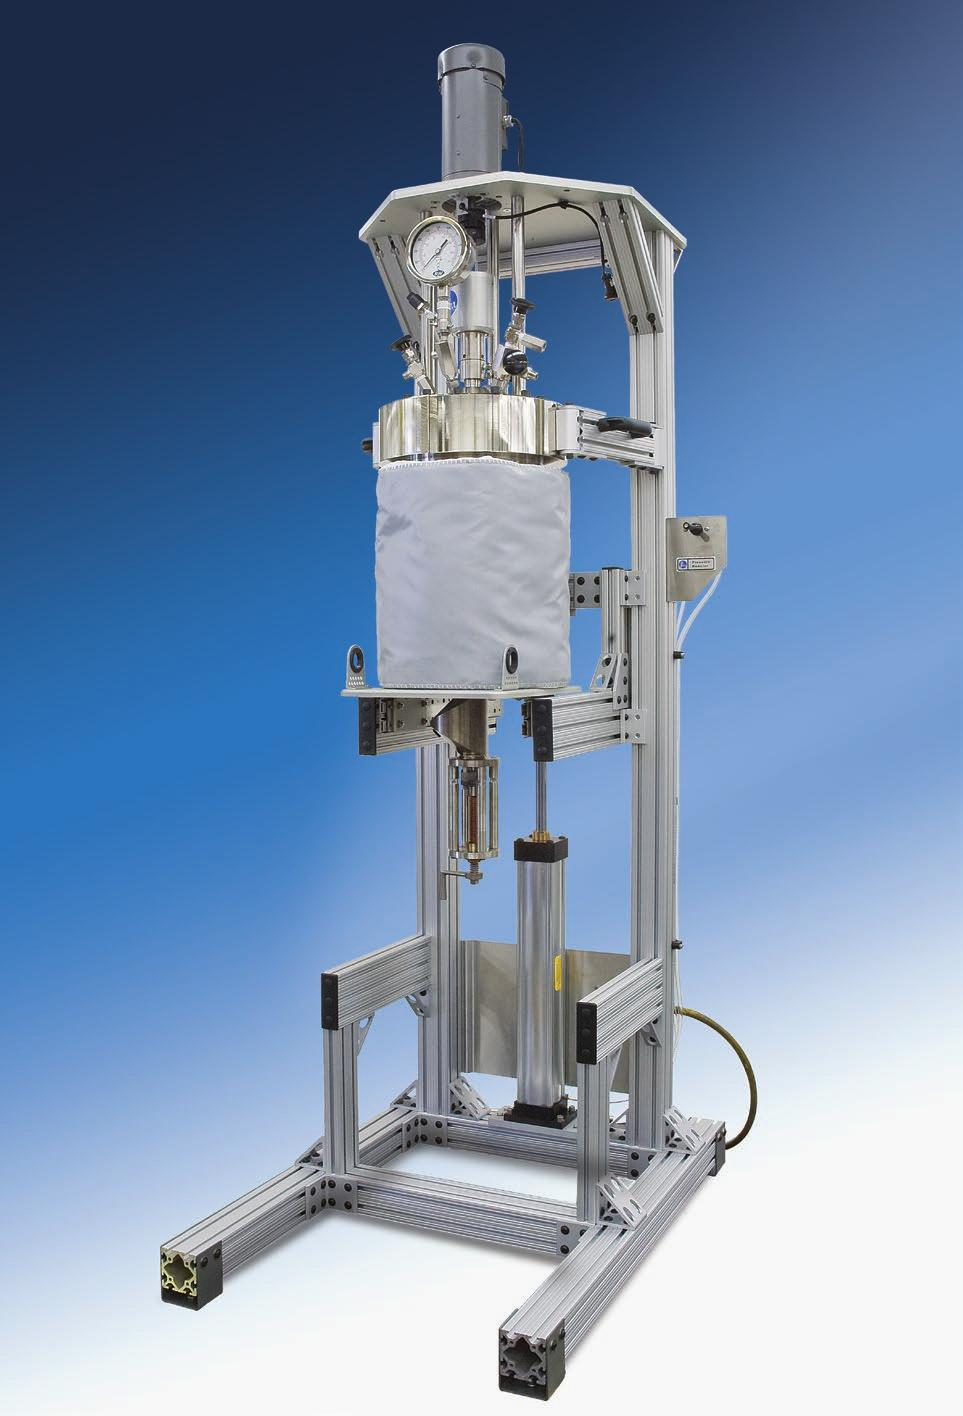 Series 4555 10 & 20 Liter Reactor Systems Series Number: 4555 Type: General Purpose Stand: Floor Stand Vessel Mounting: Moveable or Fixed Head Vessel Sizes, Liters: 10 and 20 Standard Pressure MAWP